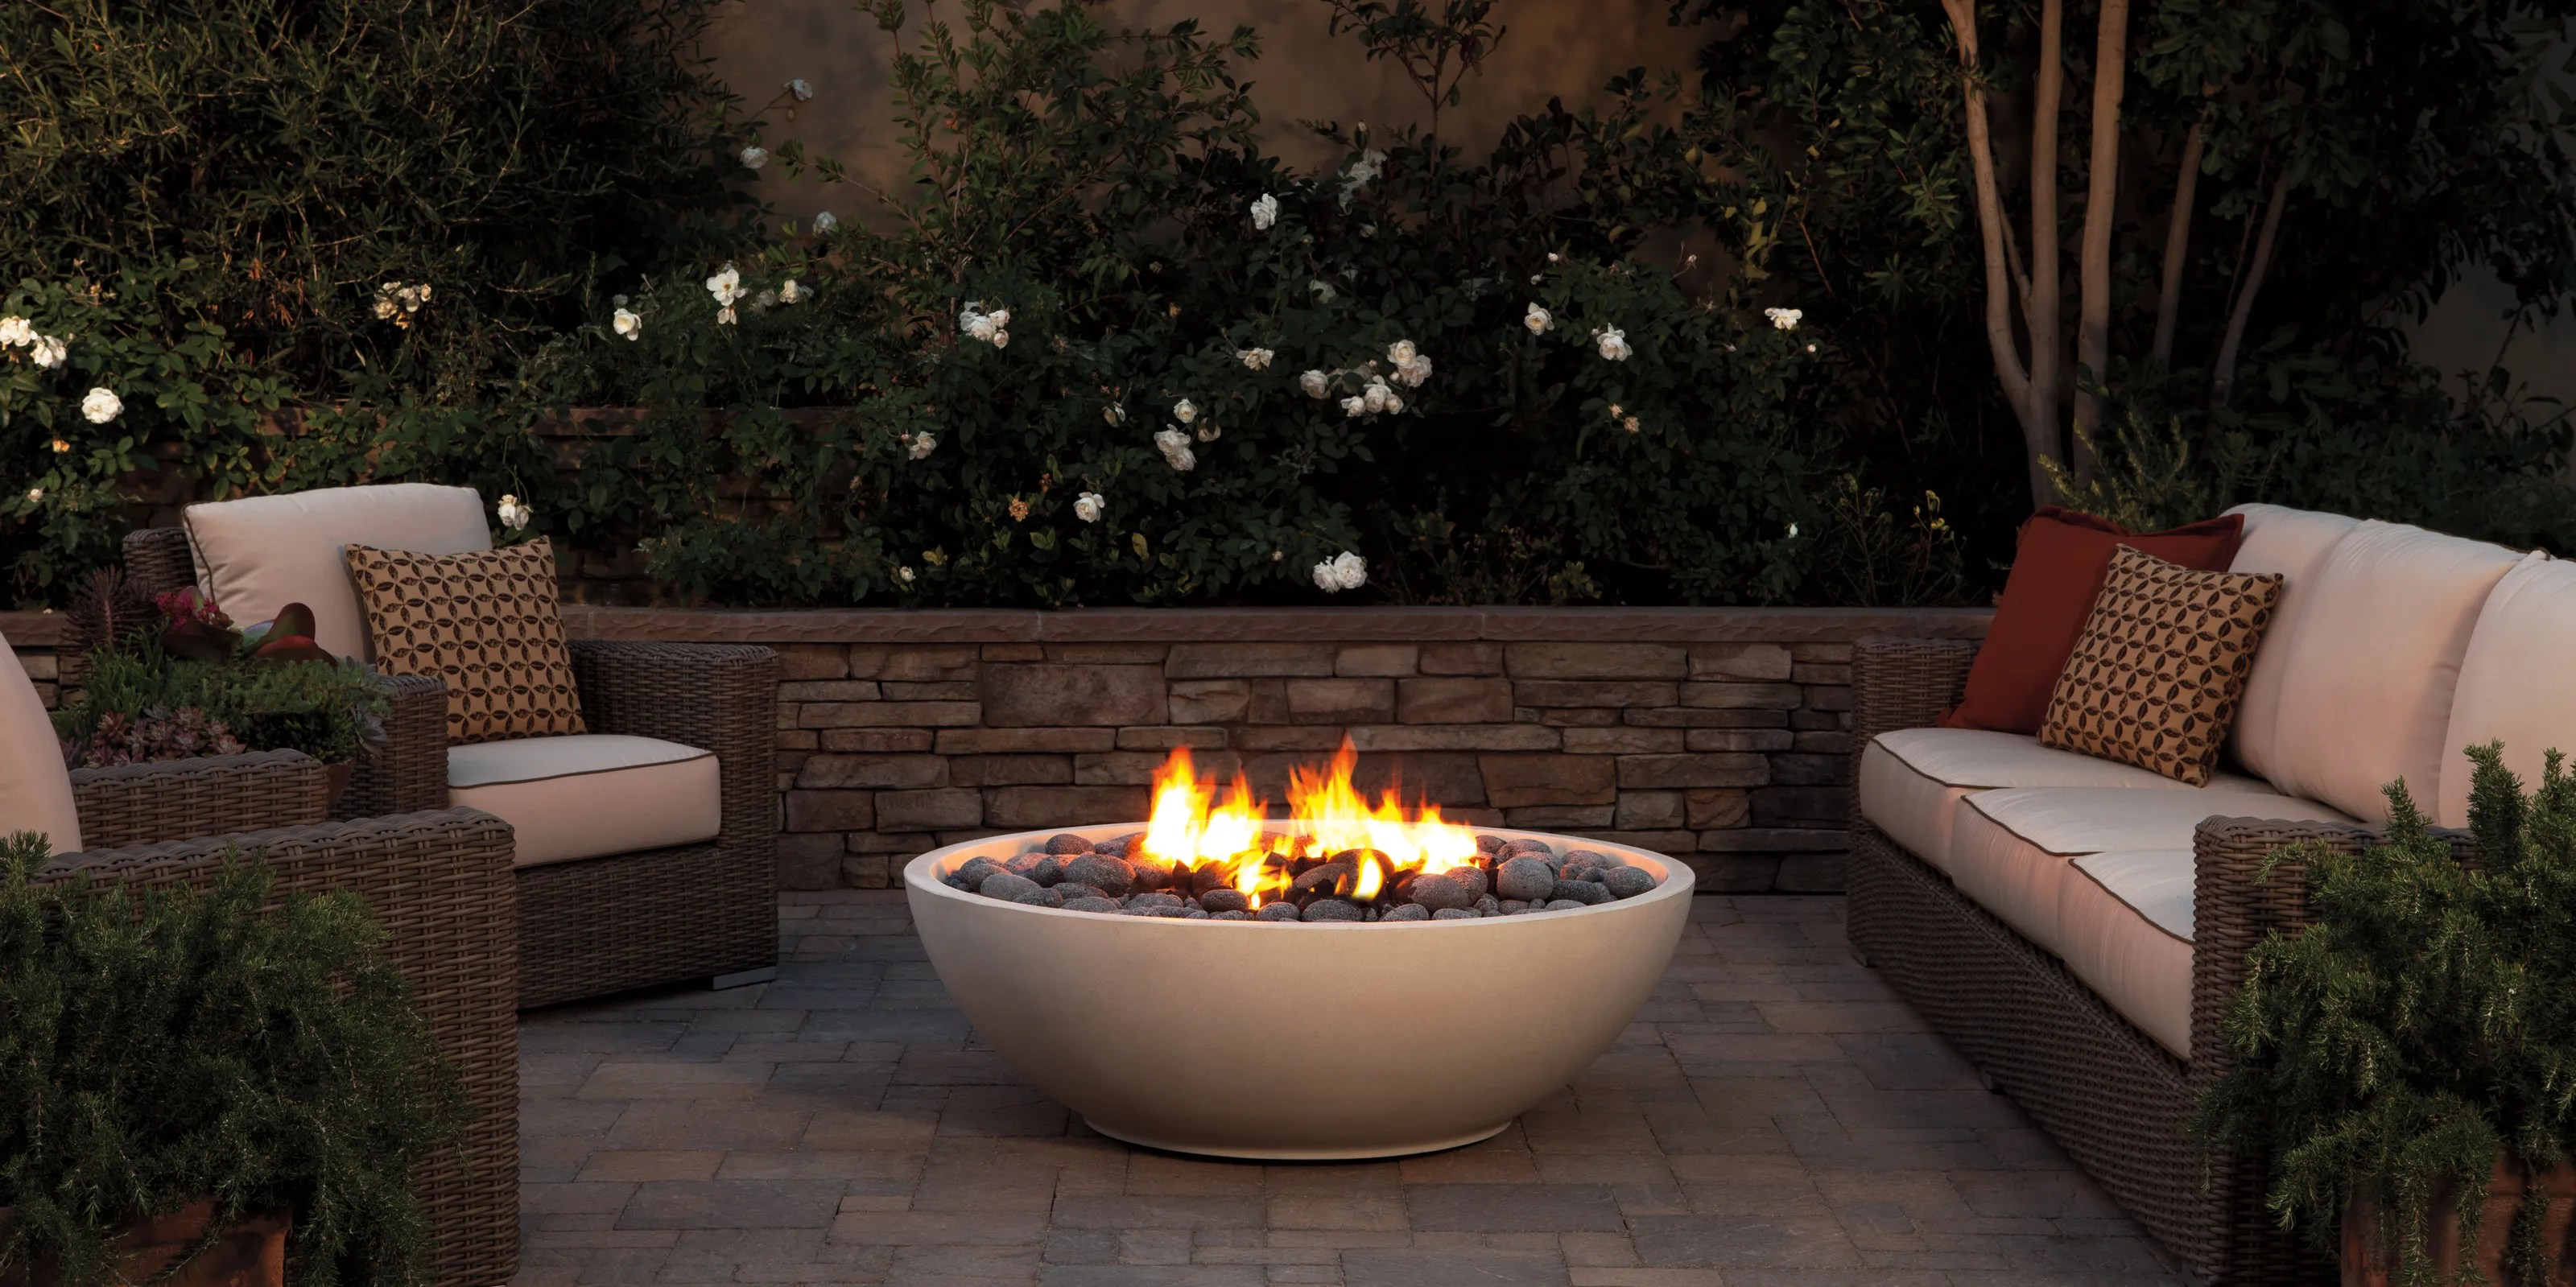 12 patio heaters to make the most of a